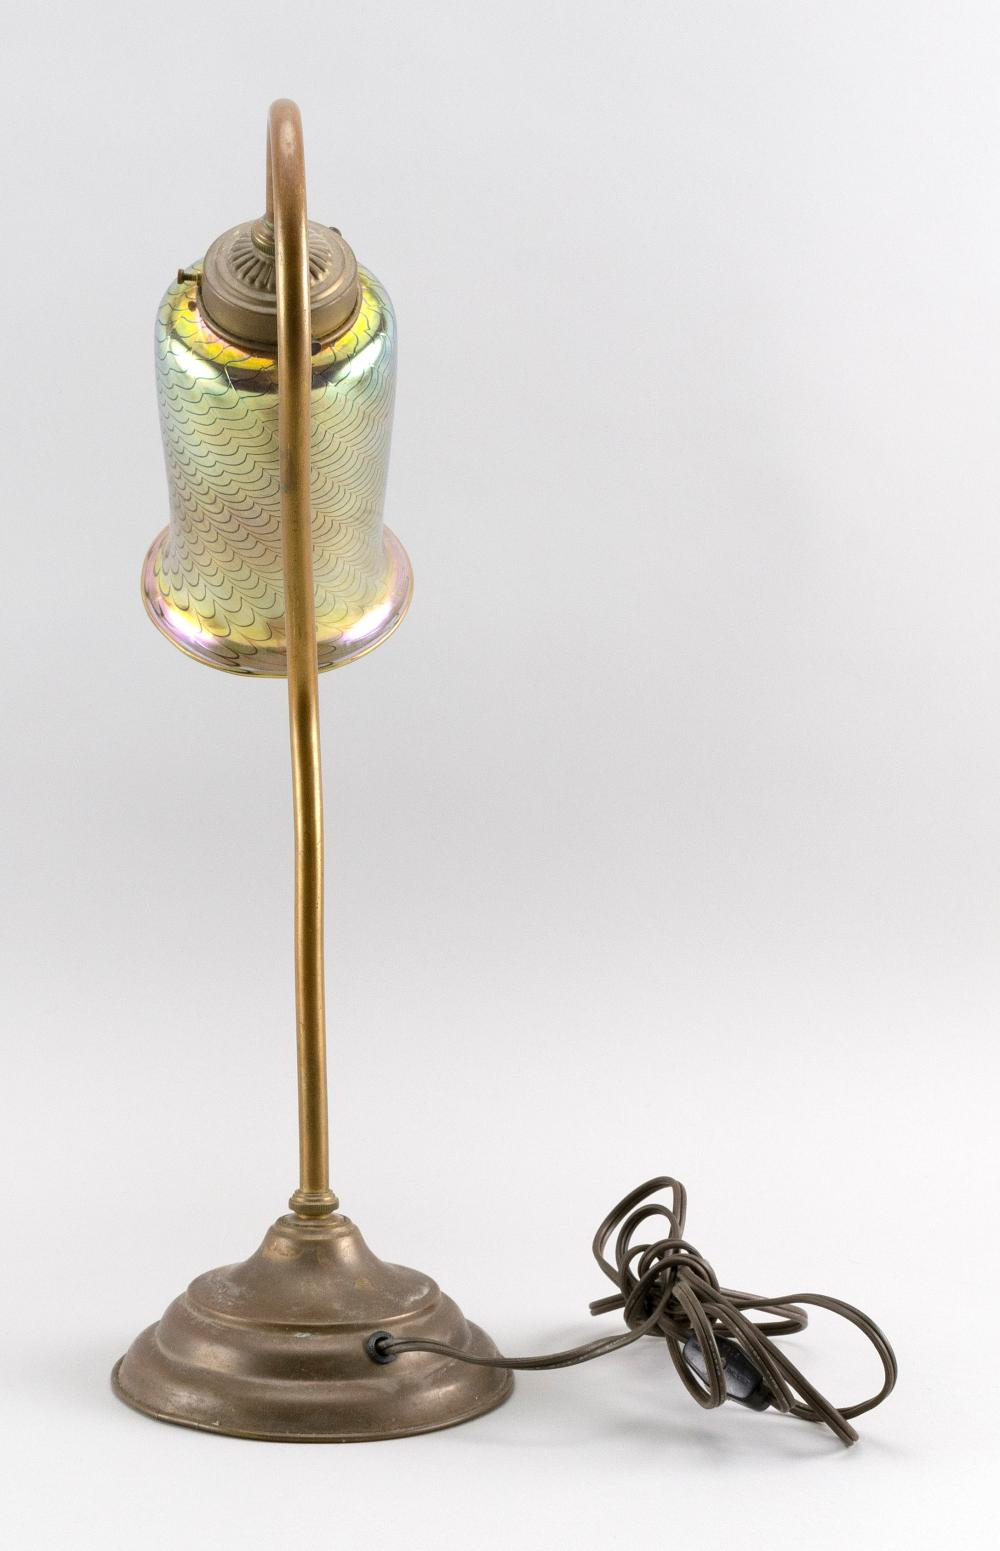 ART GLASS AND BRASS TASK LAMP Metallic gold glass shade with pulled feather design. Simple brass base. Unmarked. Height 18.5